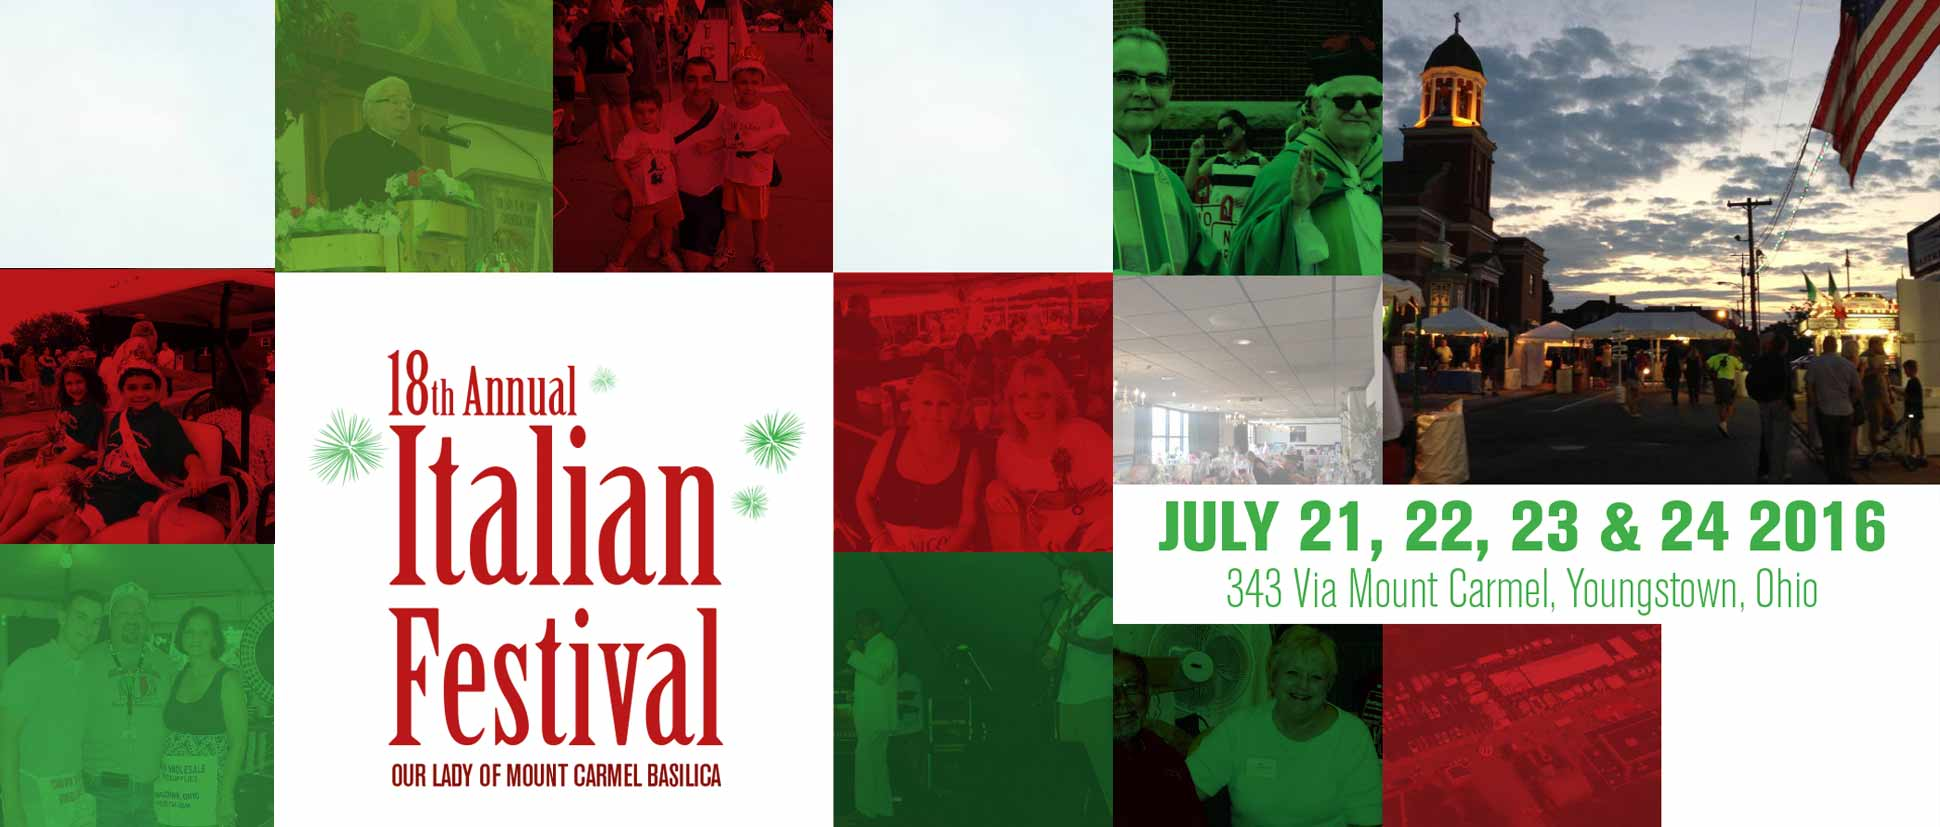 2016 Italian Fest - Our Lady of Mount Carmel Basilica in Youngstown, OH